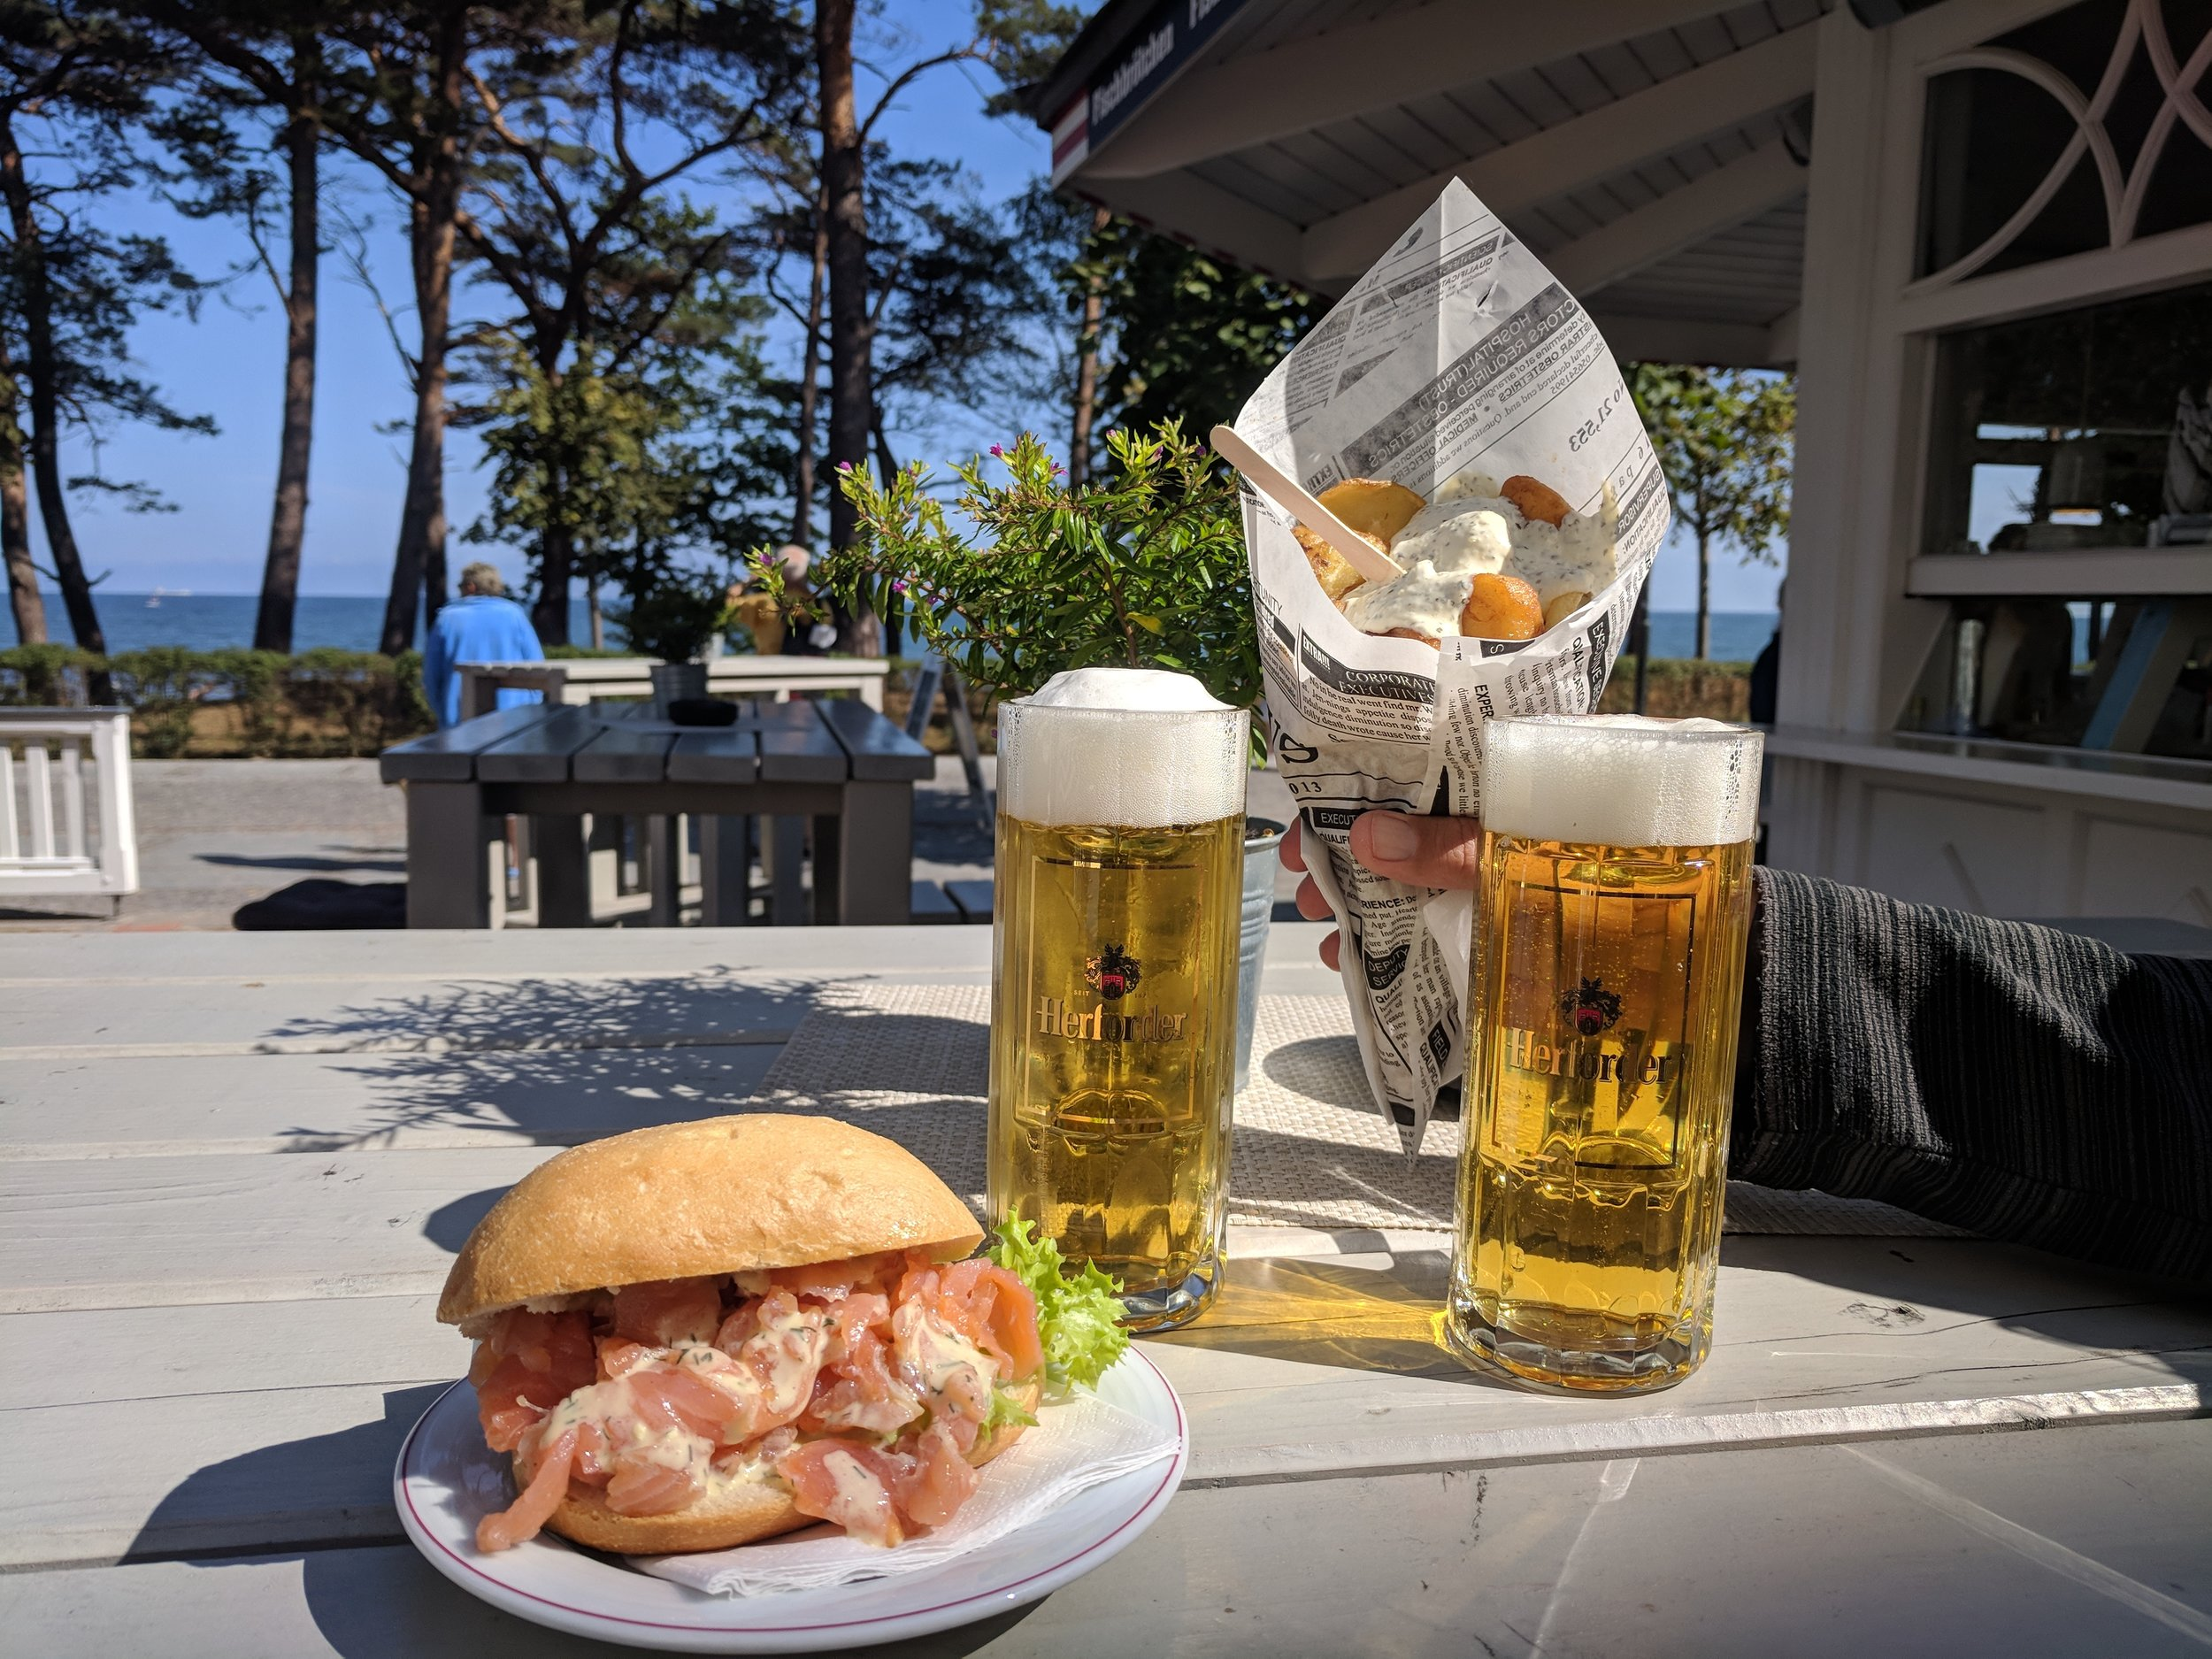 Fischbrötchen and fish & chips by the sea